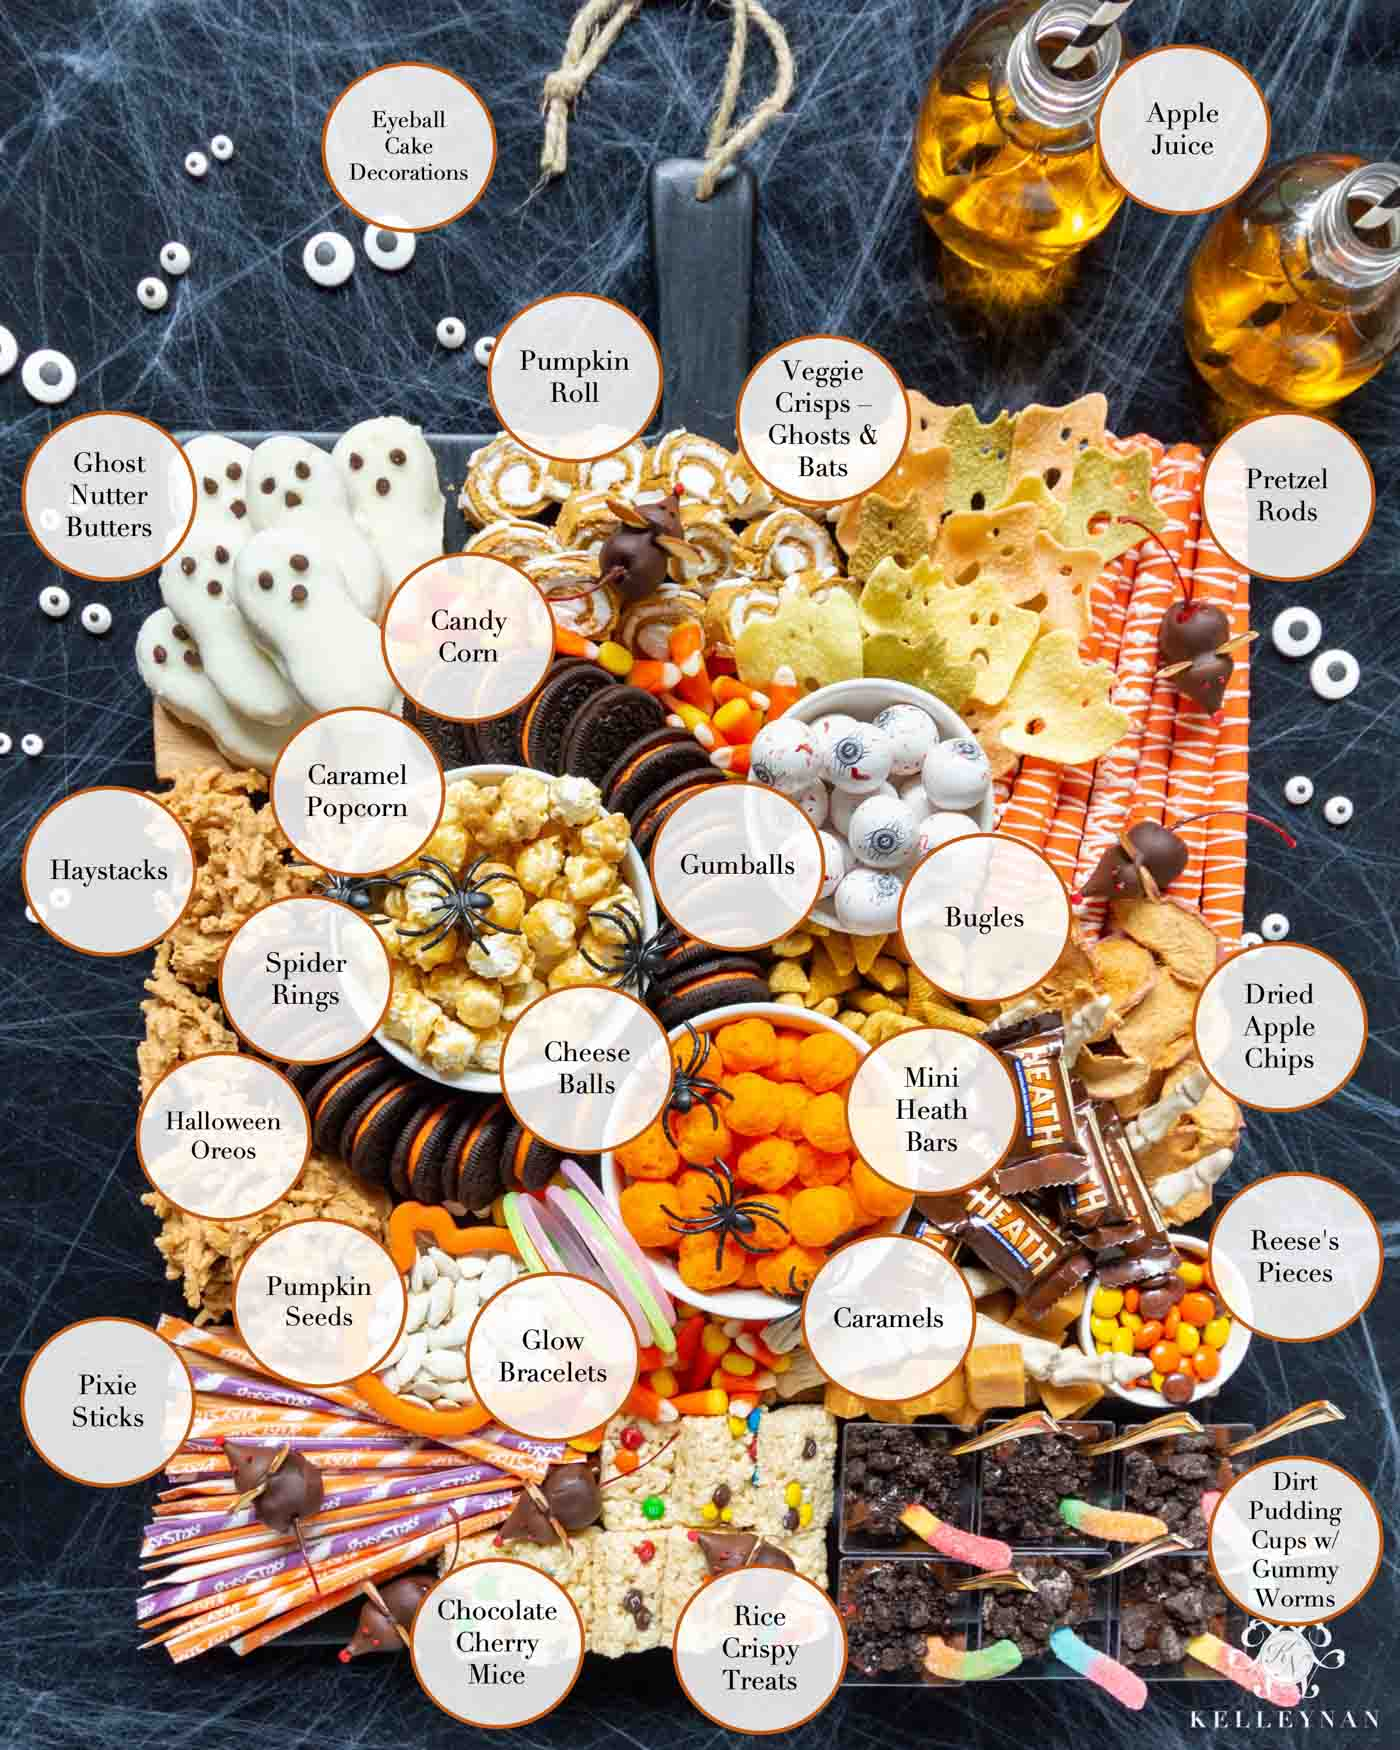 How to Create the Ultimate Halloween Trick or Treat Snack Board